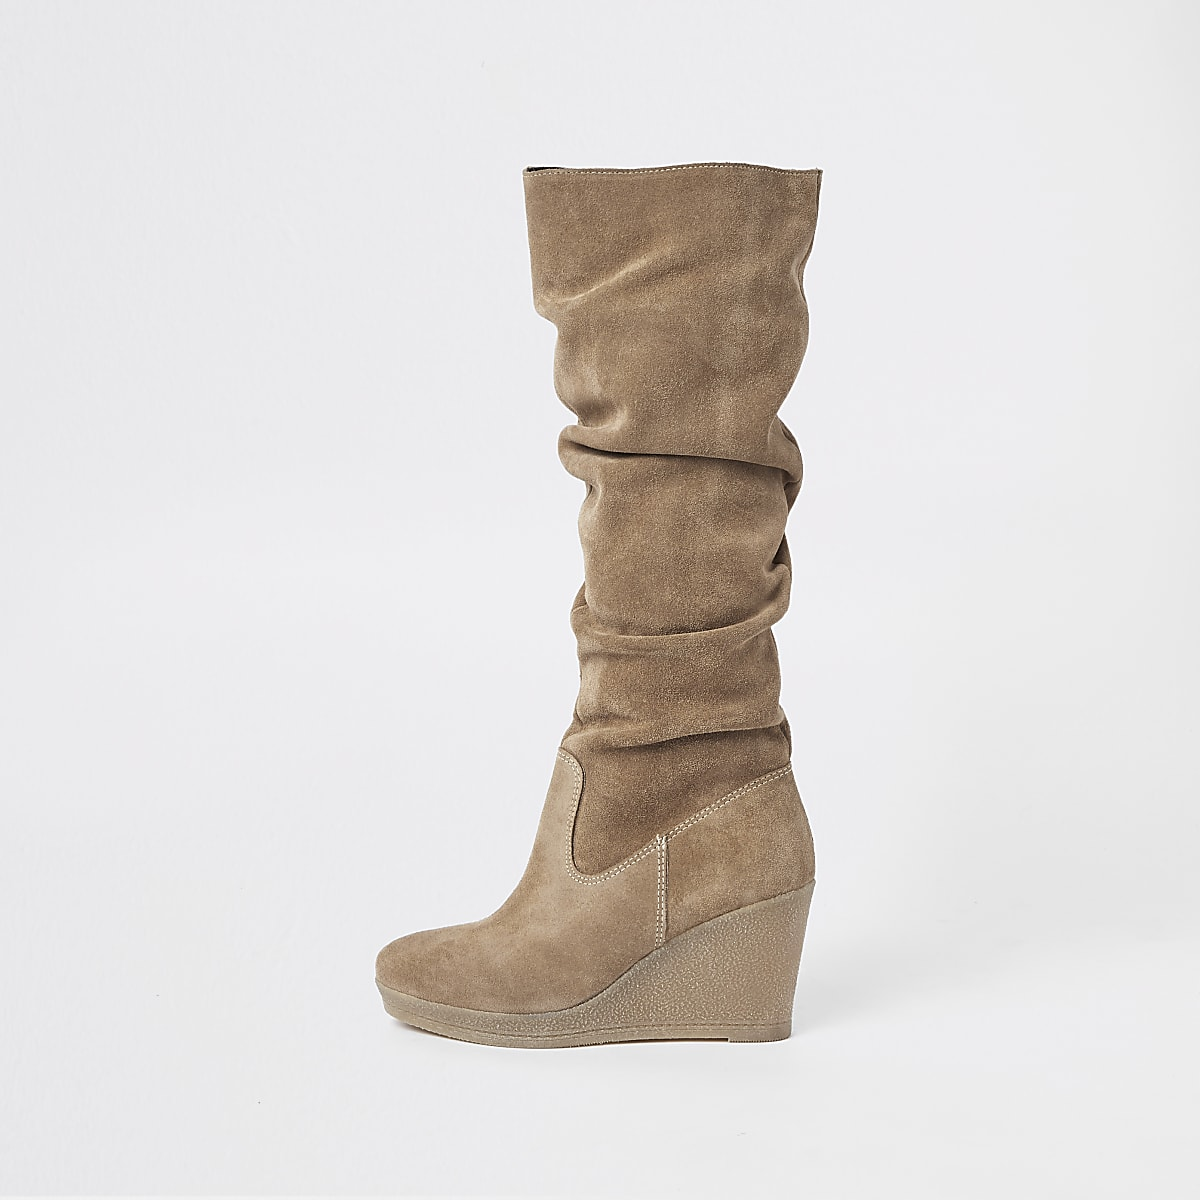 Beige suede knee high slouch wedge boots